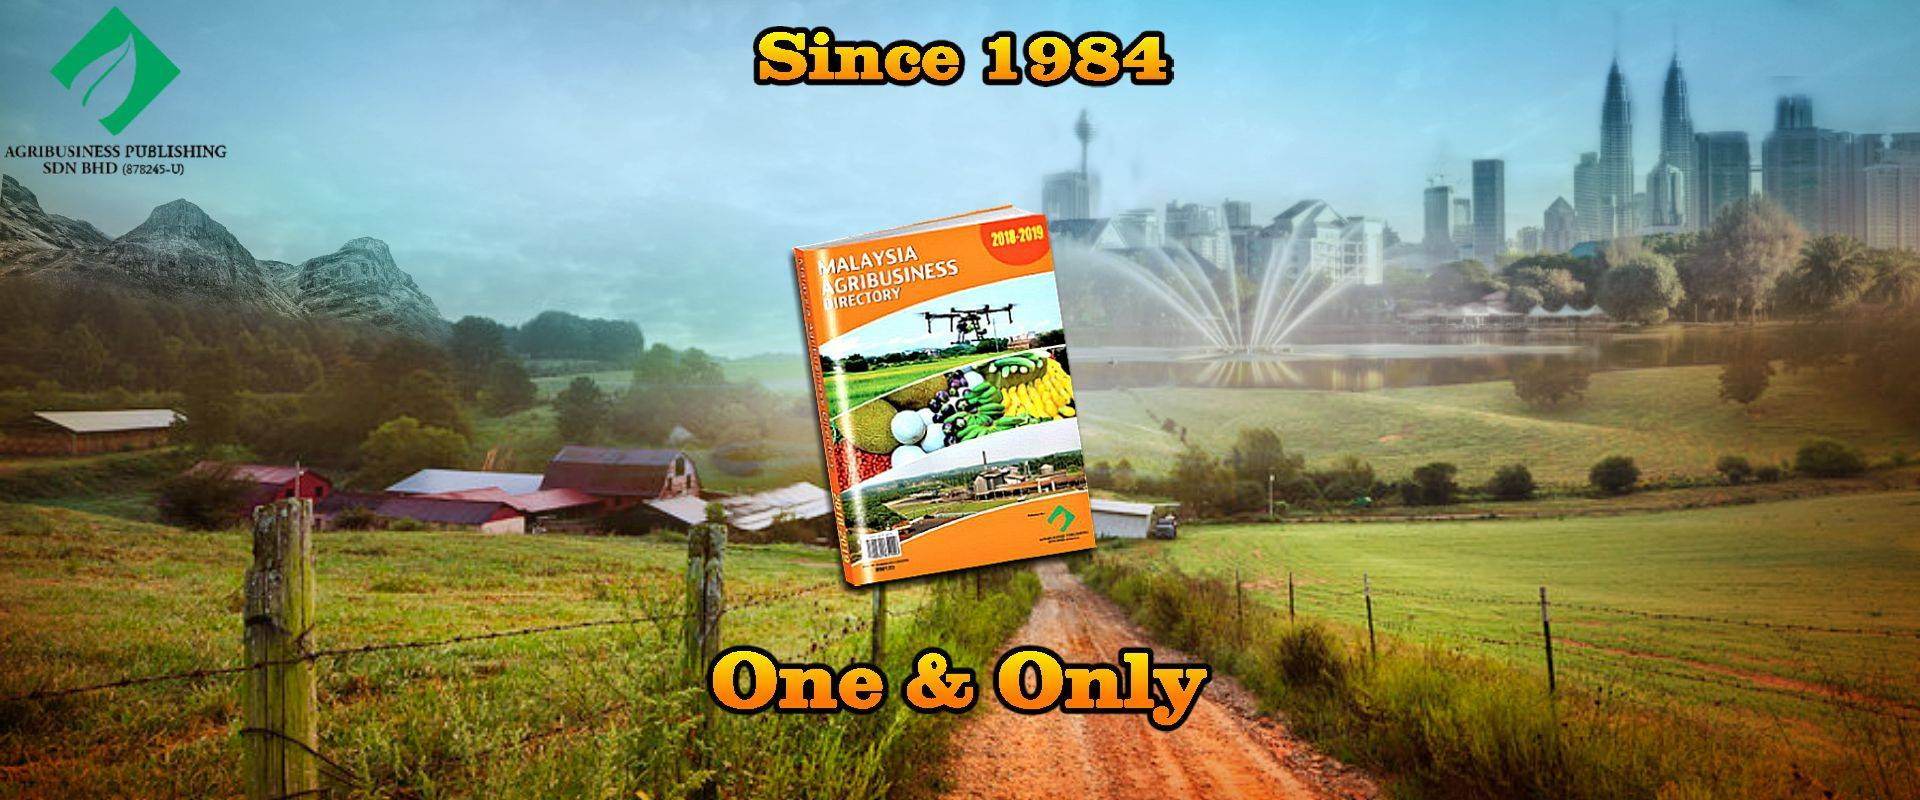 One & Only Agribusiness Directory